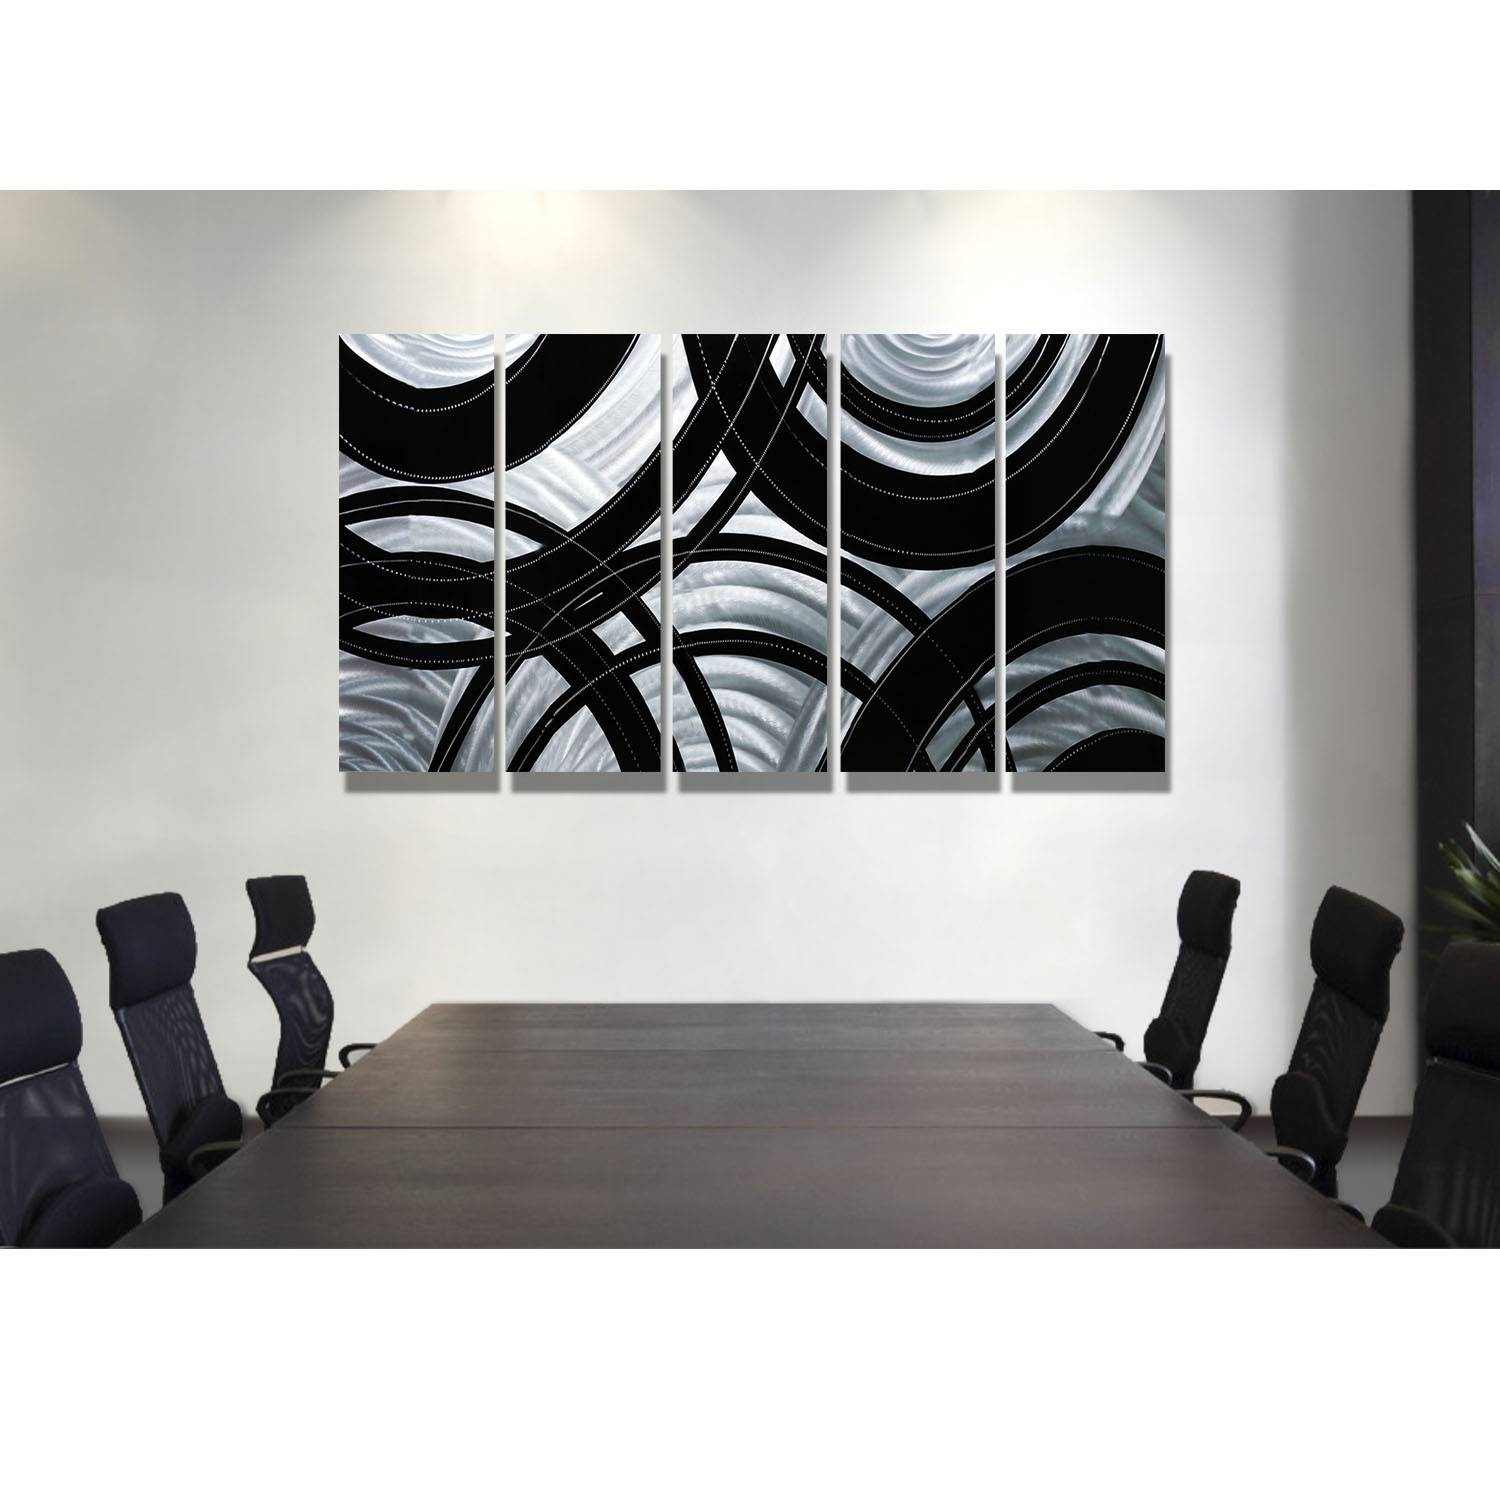 Synergy – Black And Silver Metal Wall Art – 5 Panel Wall Décor Inside 2018 Black And Silver Metal Wall Art (View 5 of 20)